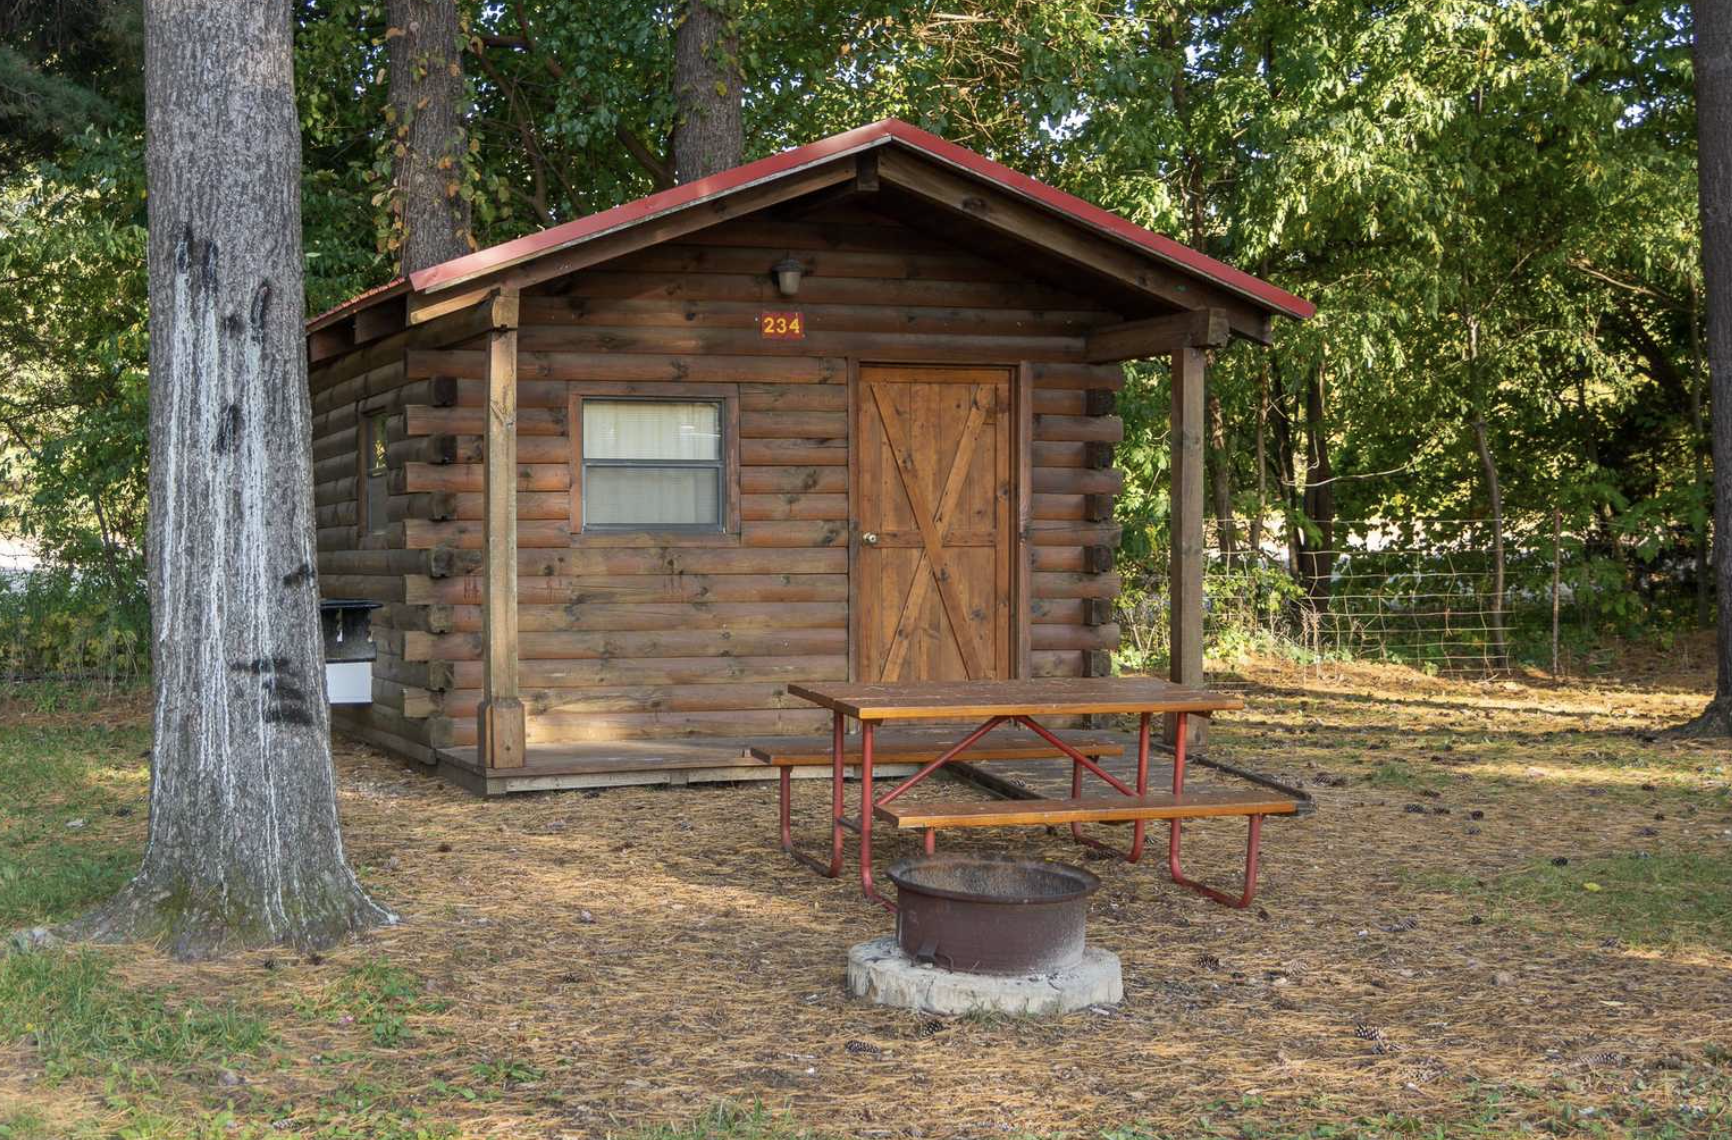 Cabin between trees with picnic table and fireplace